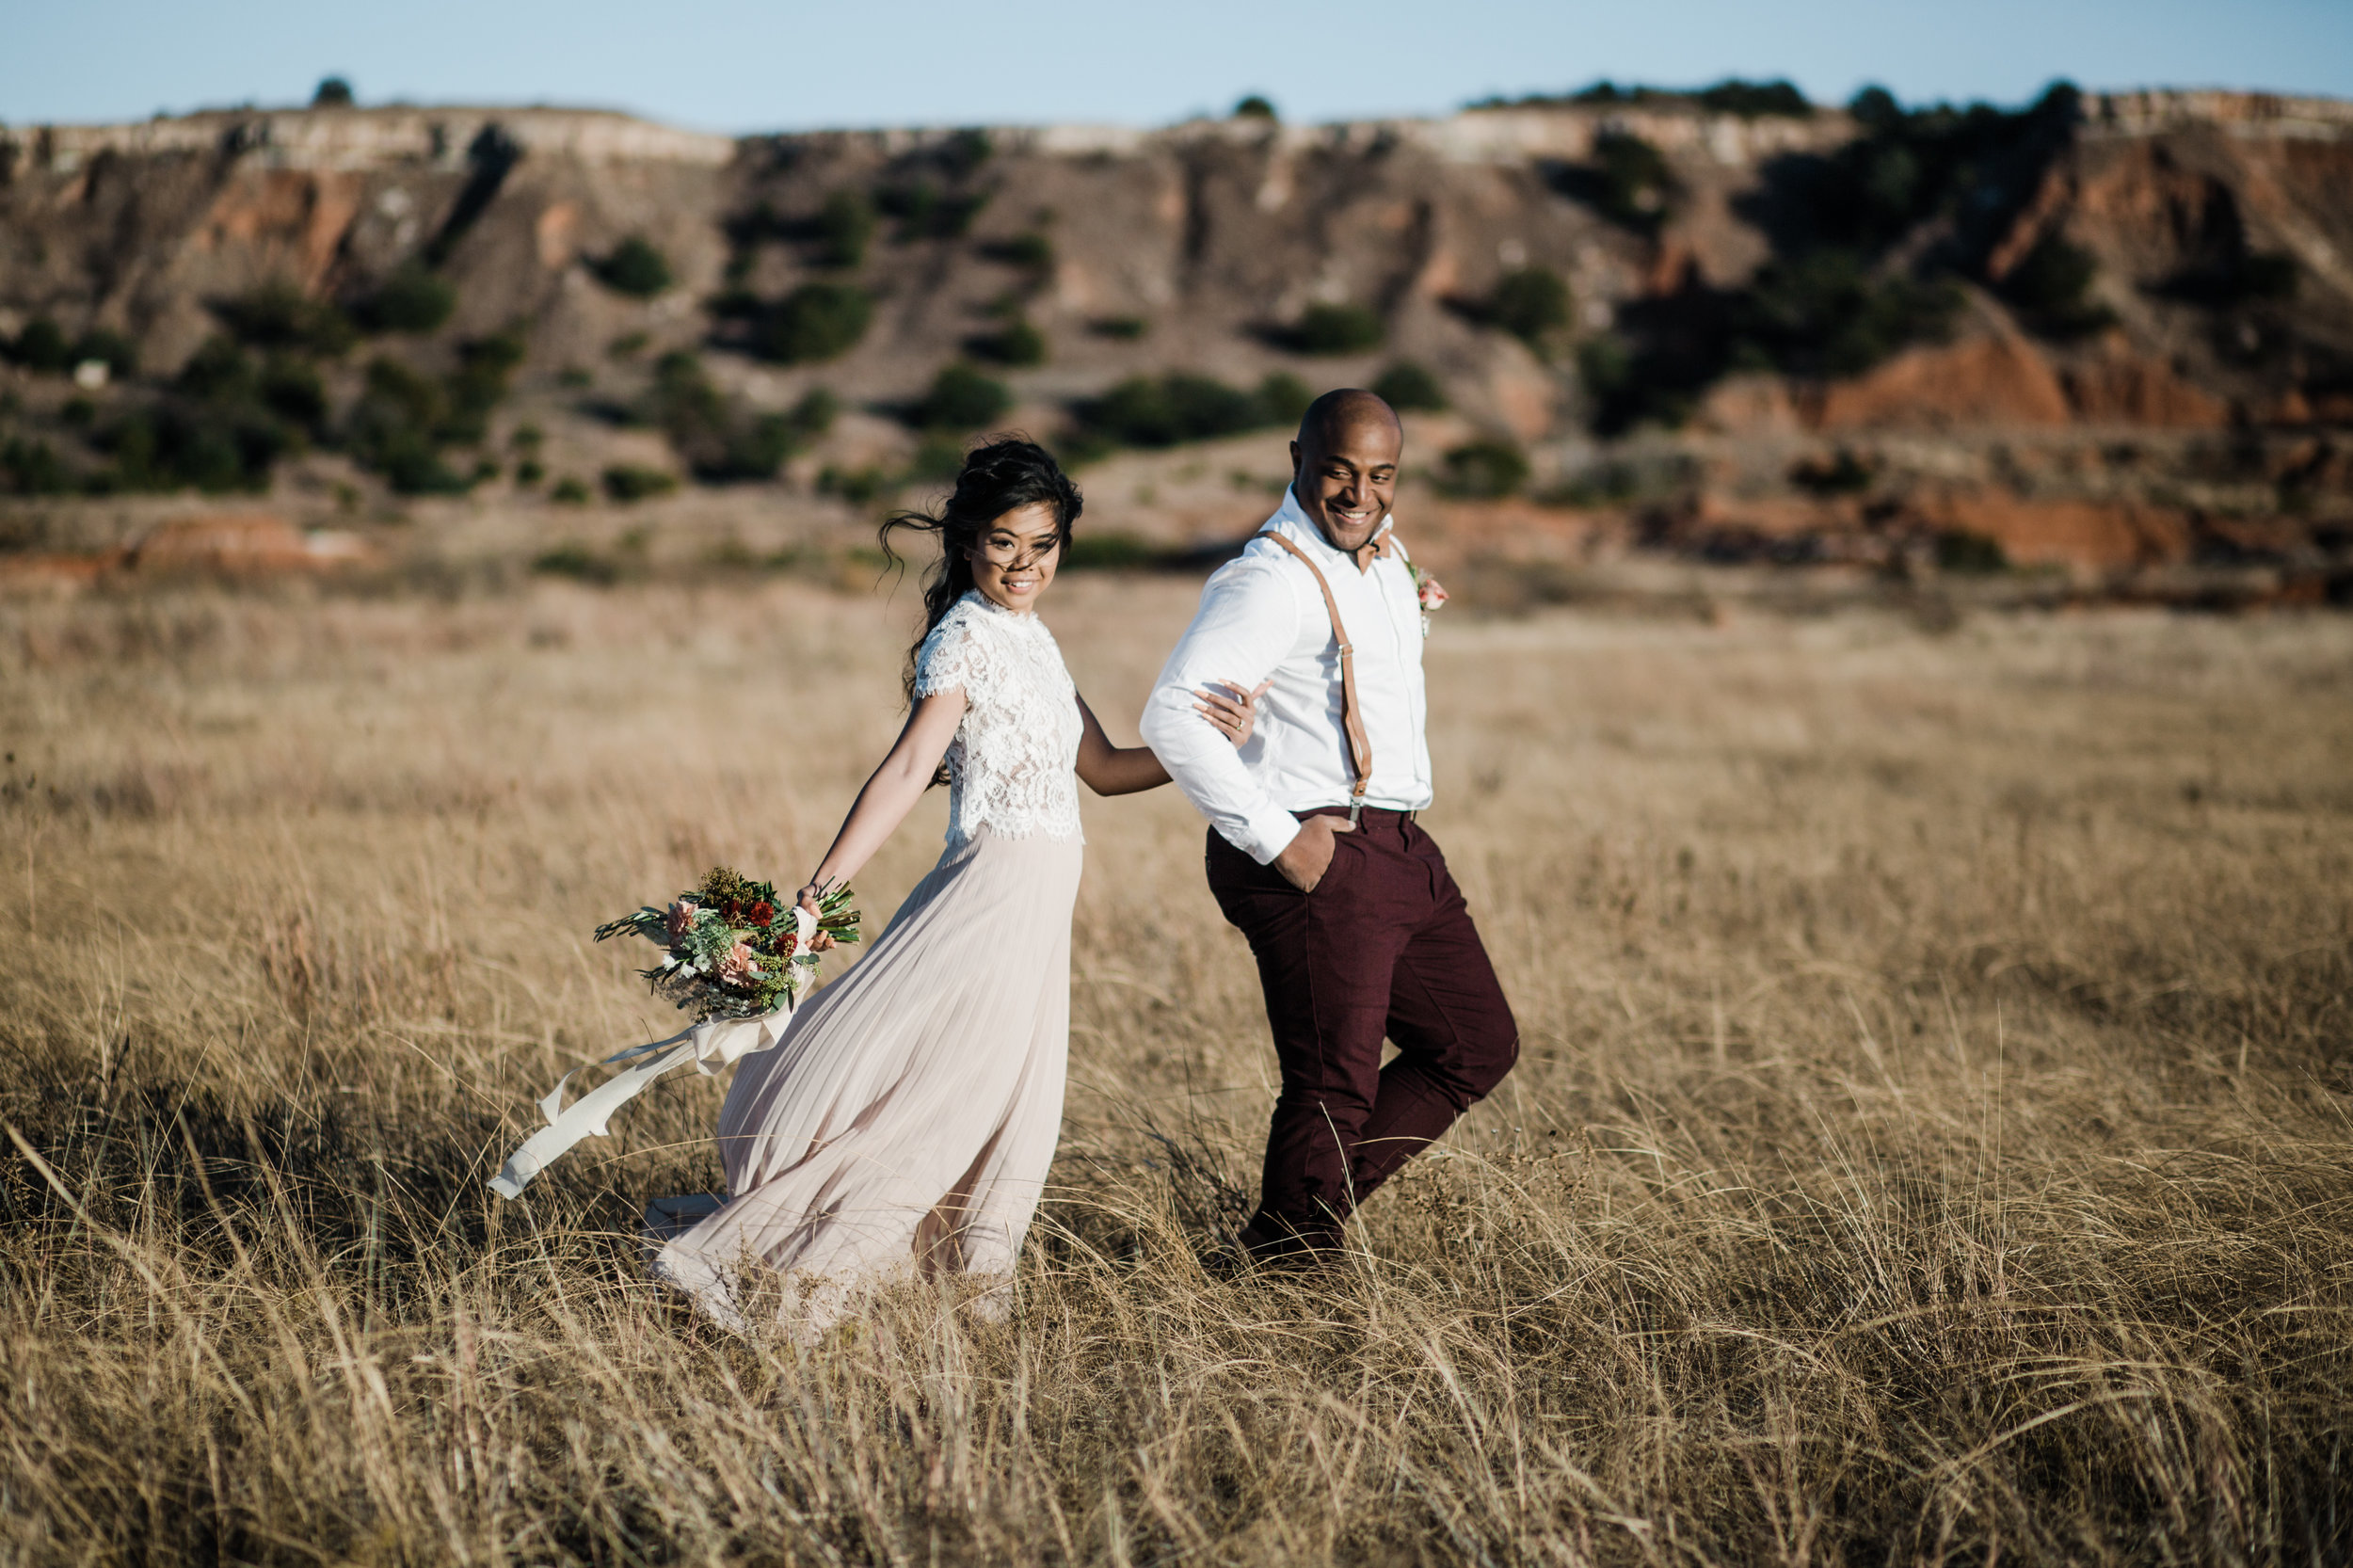 gloss-mountain-wedding-la-vintage-ok-rentals-11.jpg